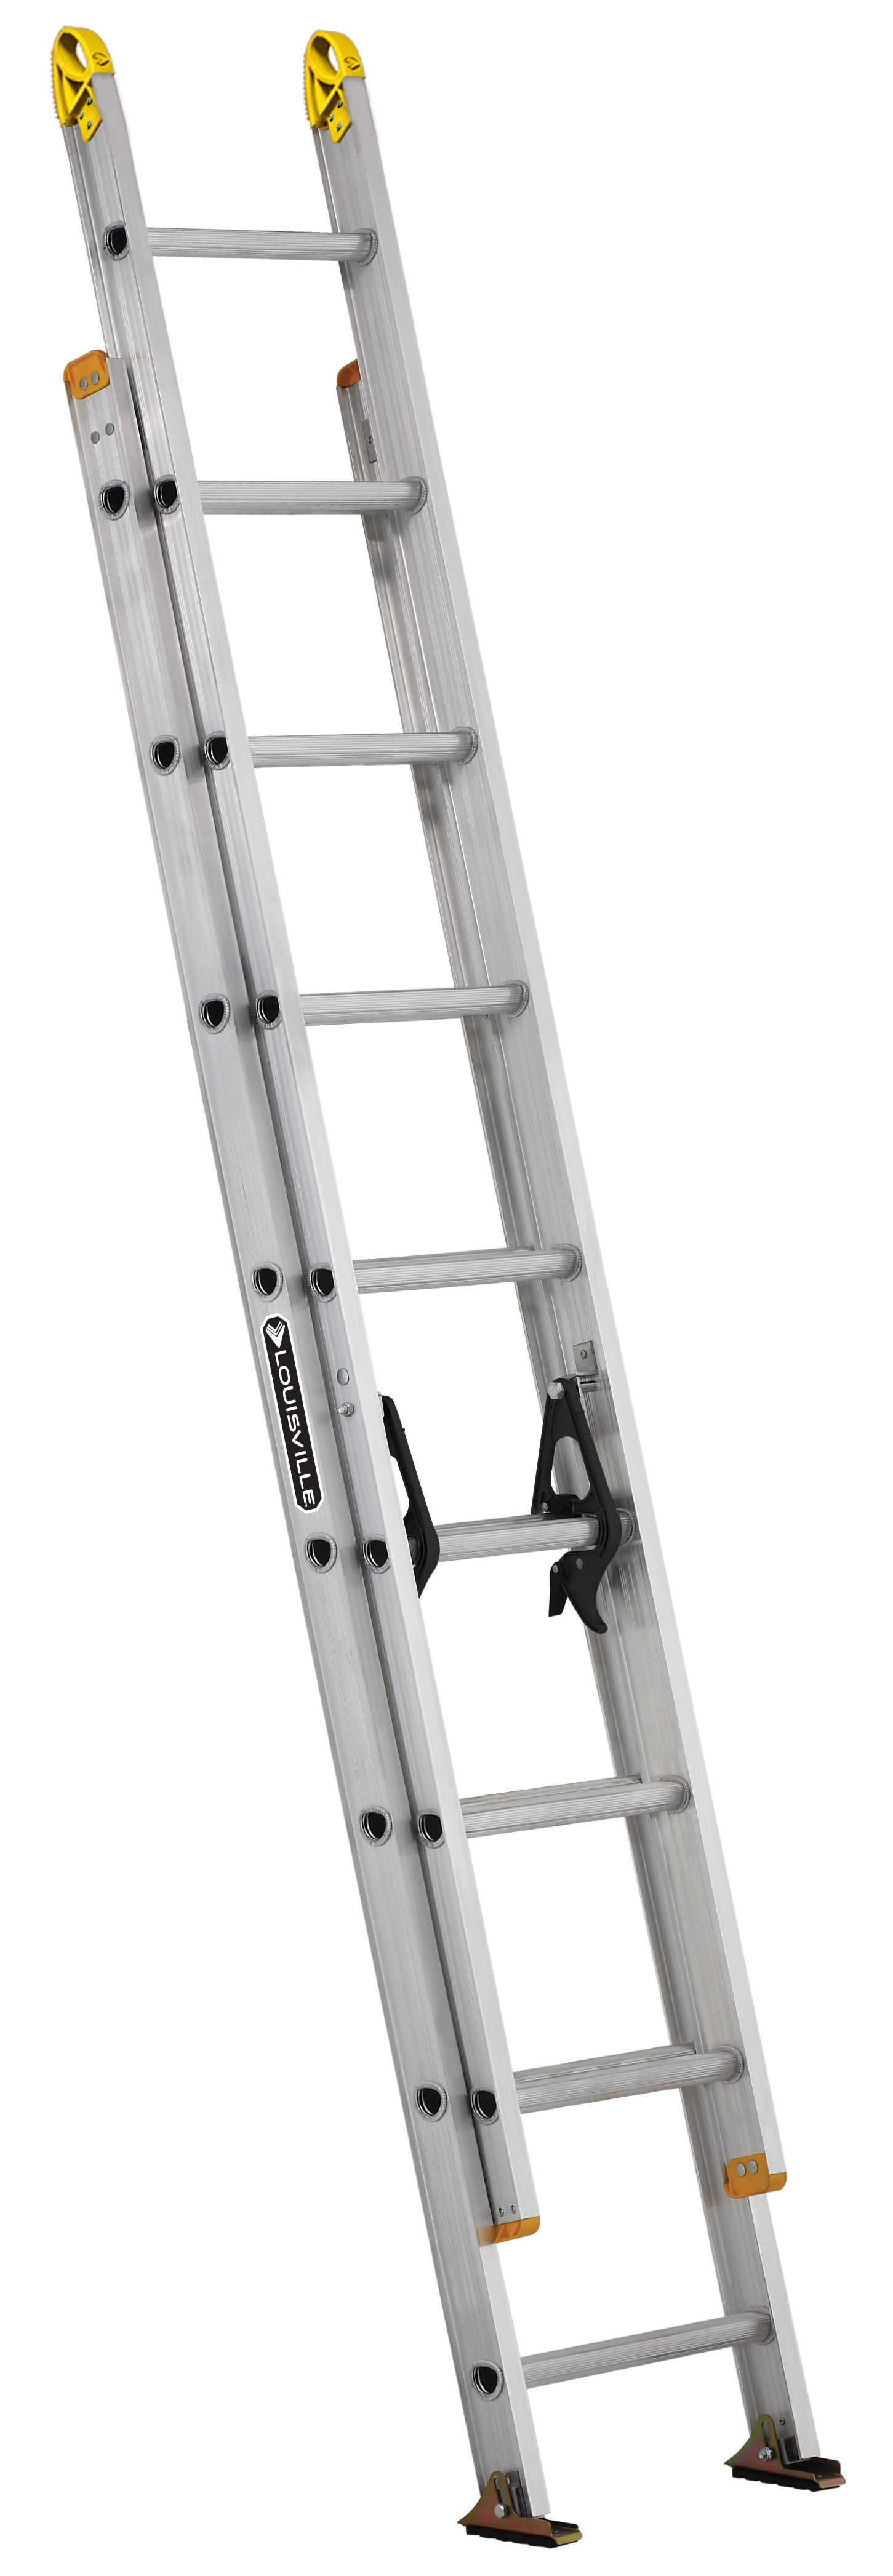 Louisville Ladder AE3216 16 ft. Aluminum Extension Ladder, Type I, 250 Lbs Load Capacity